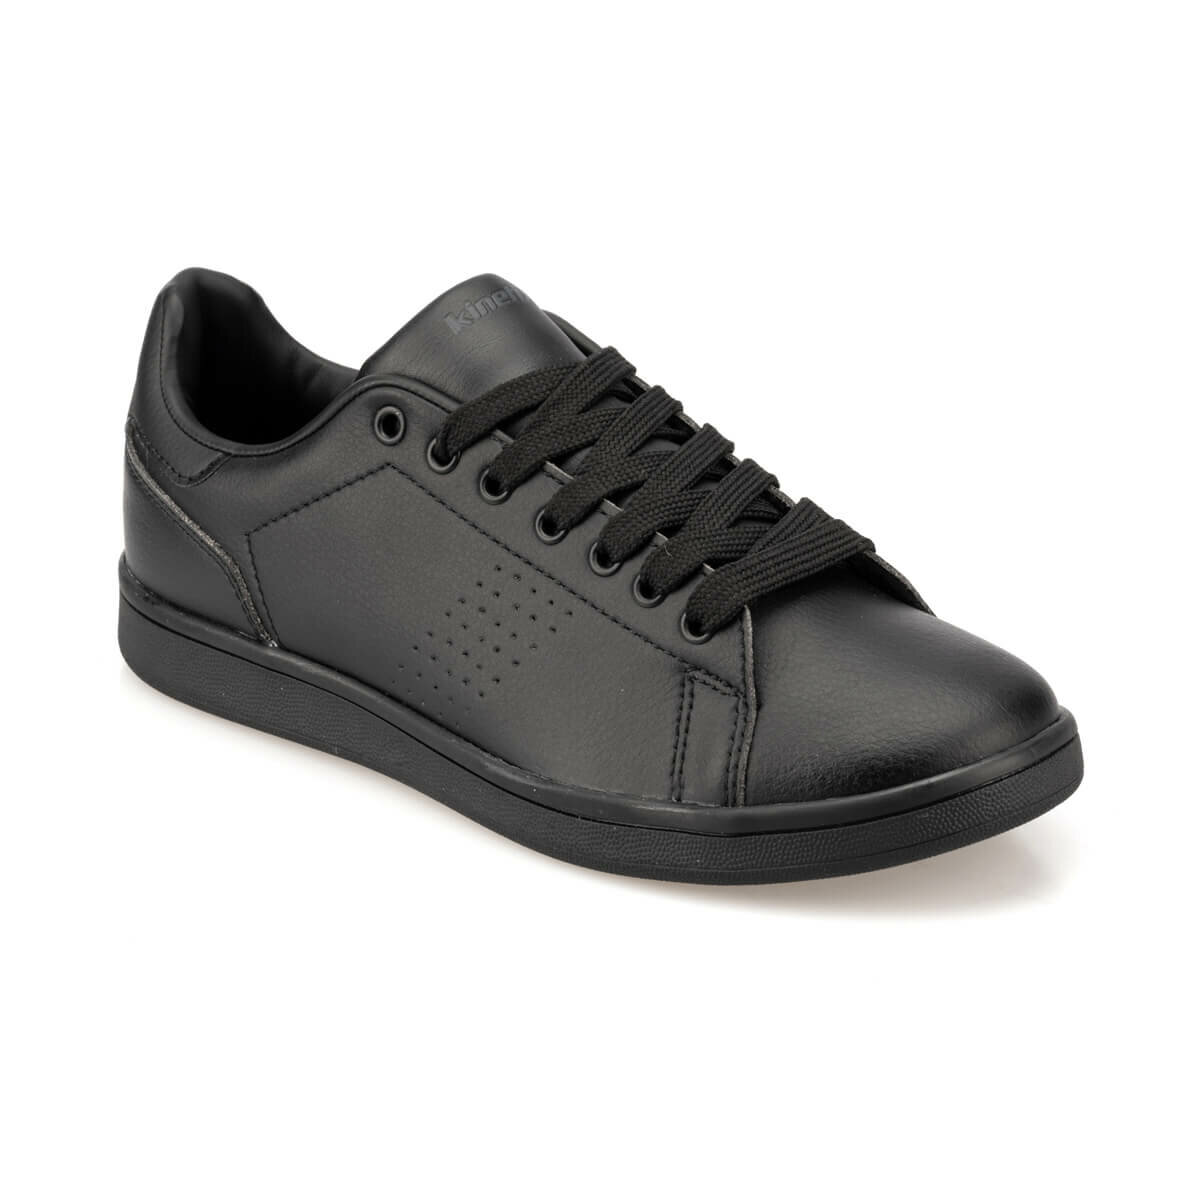 FLO PLAIN W 9PR Black Women 'S Sneaker Shoes KINETIX